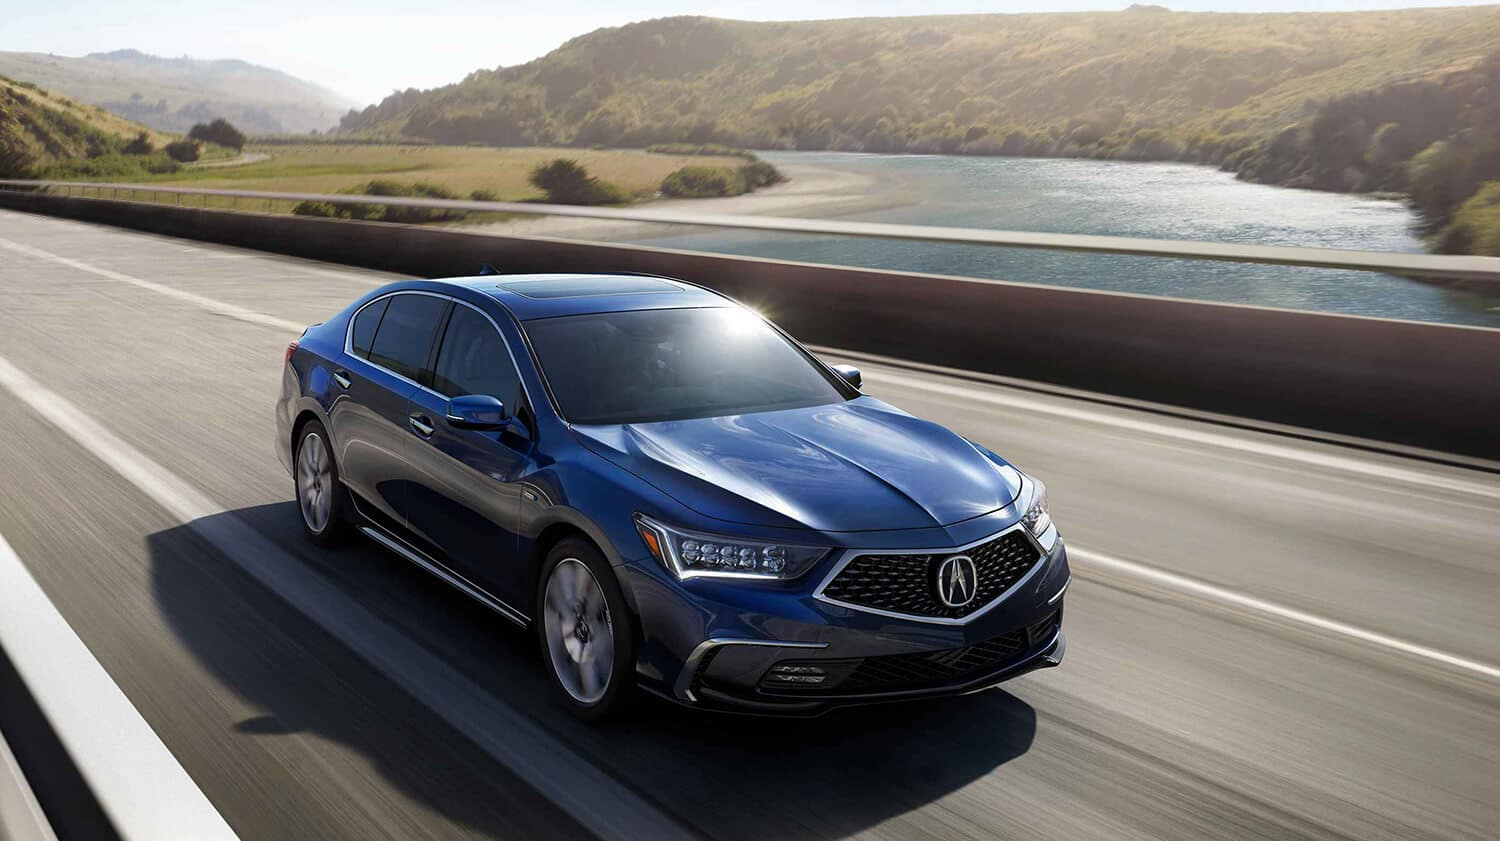 2018 Acura RLX Exterior Front Angle Passenger Side